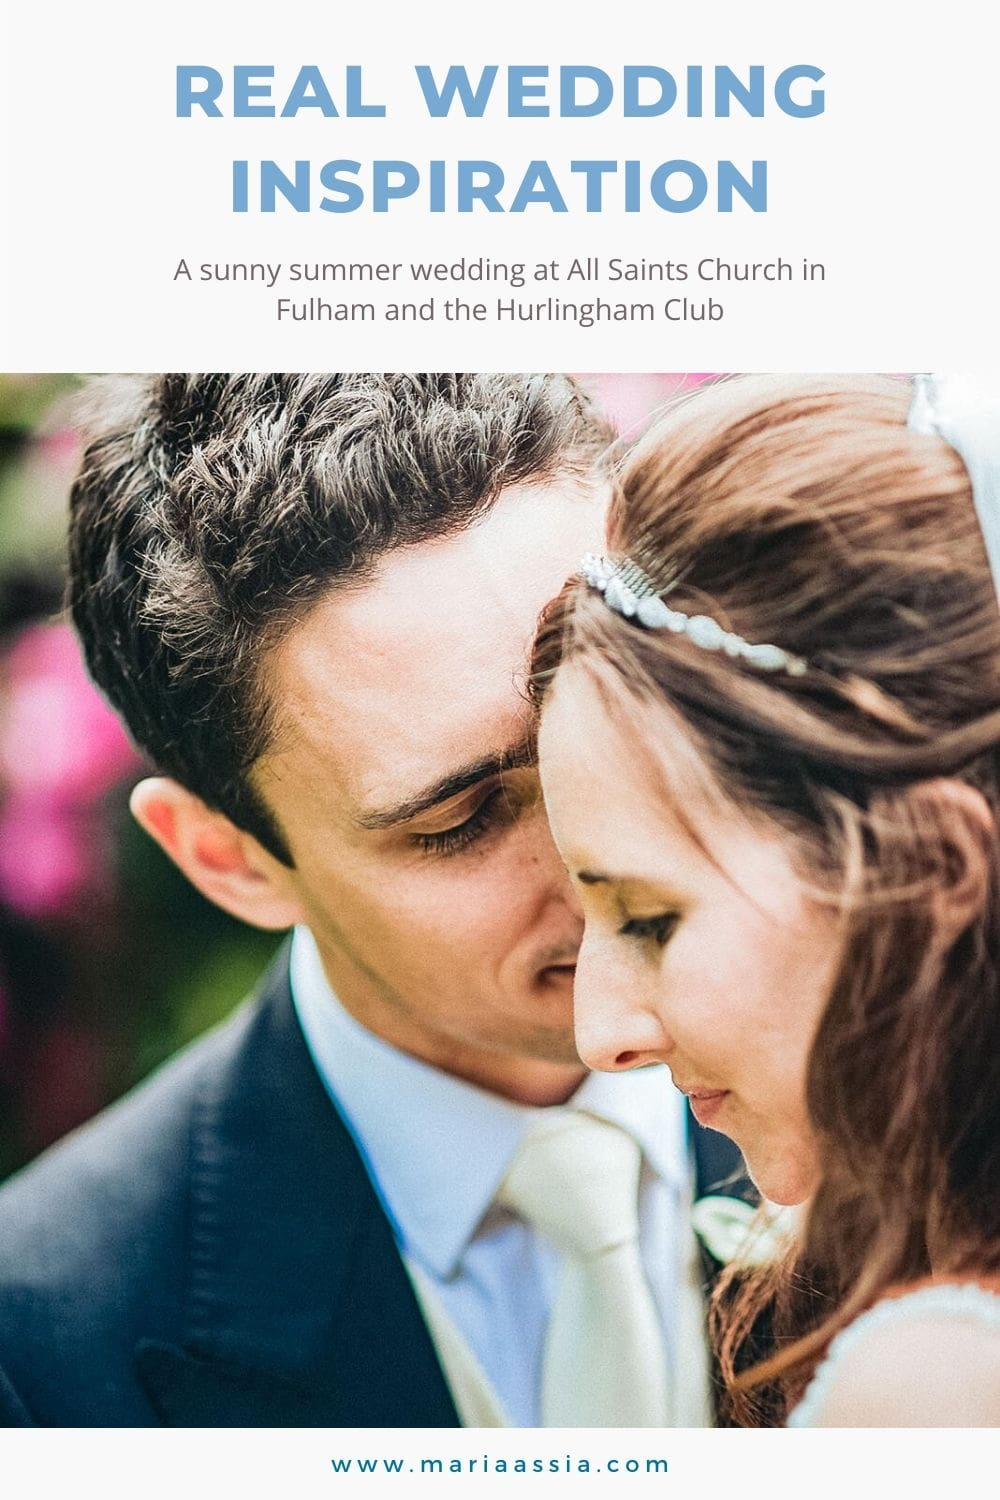 Real wedding inspiration for a colourful summer Hurlingham Club wedding